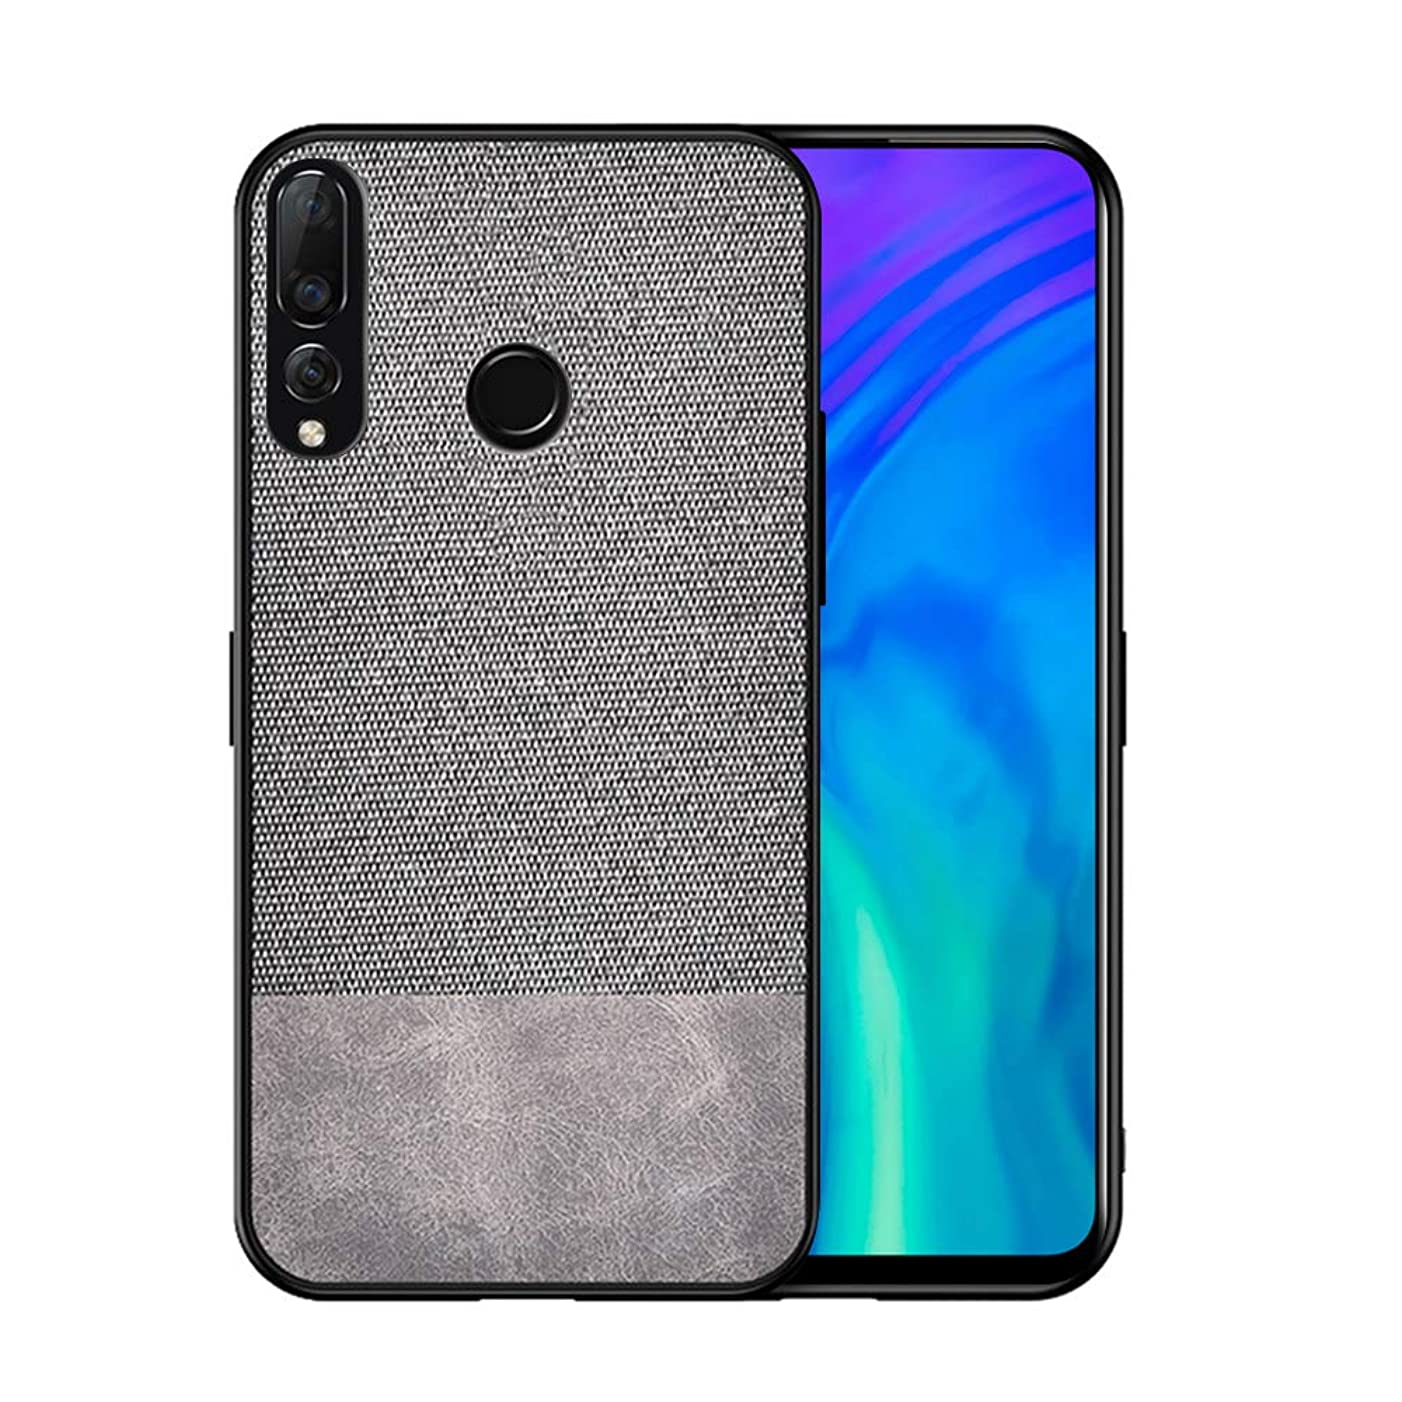 Torubia Cell Phone Case for Huawei Y9 Prime,Ultra-Thin Slim Phone Cover Case Shockproof Armor Protector Full Protective for Huawei Y9 Prime,Splicing Grey